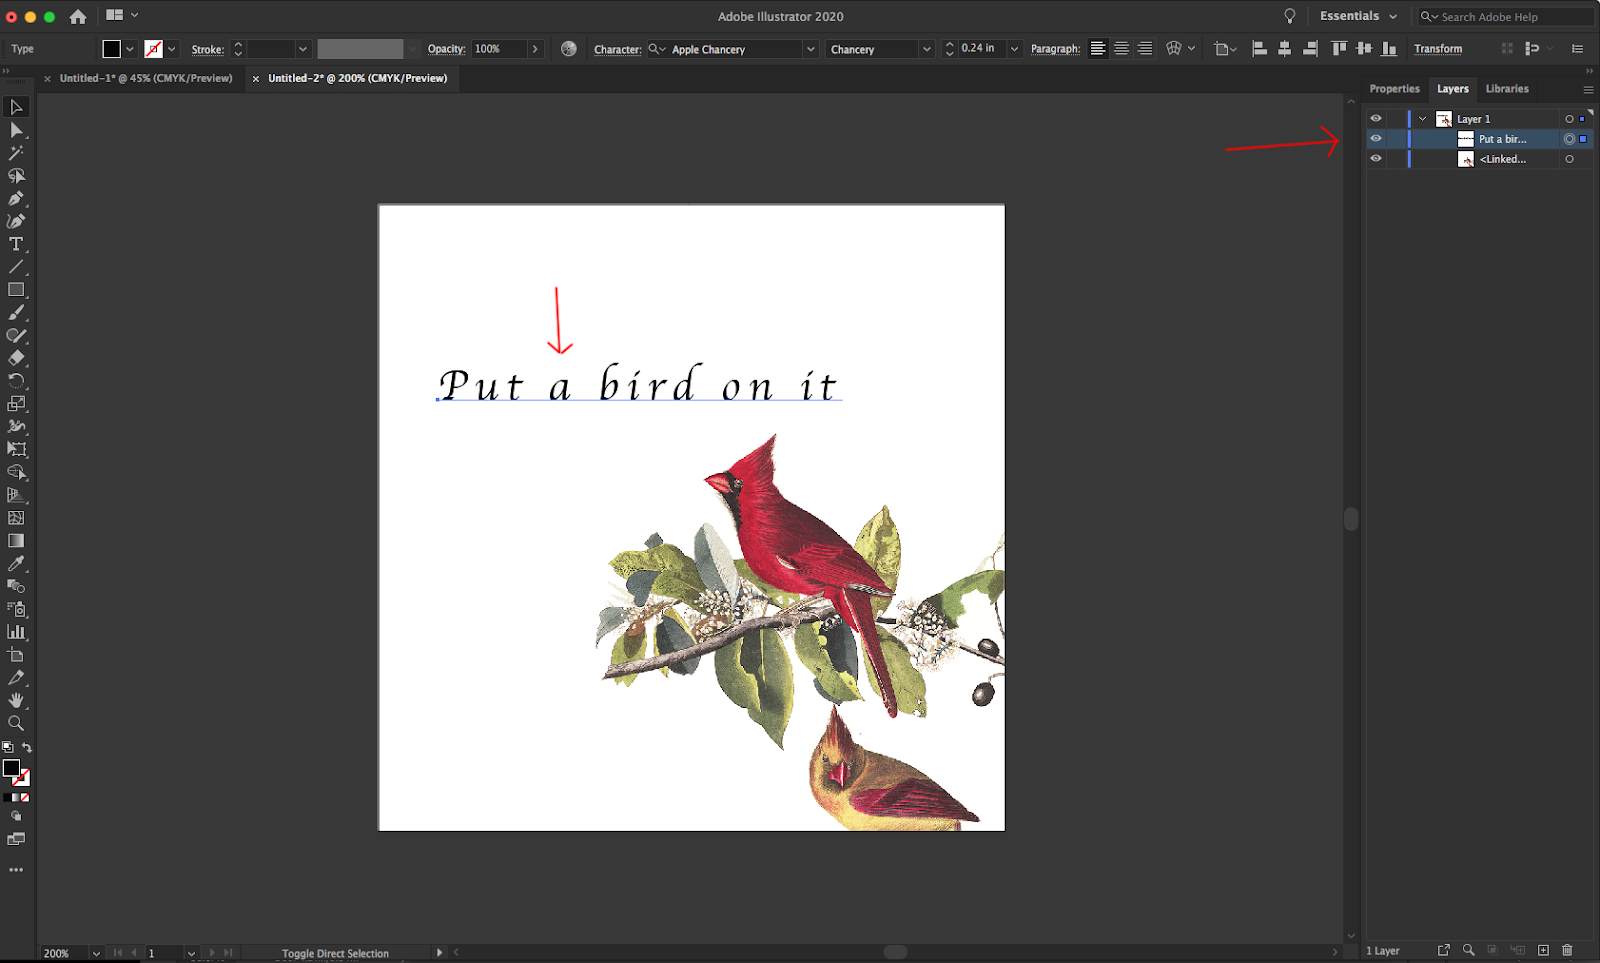 Image showing how to select text in Adobe Illustrator.